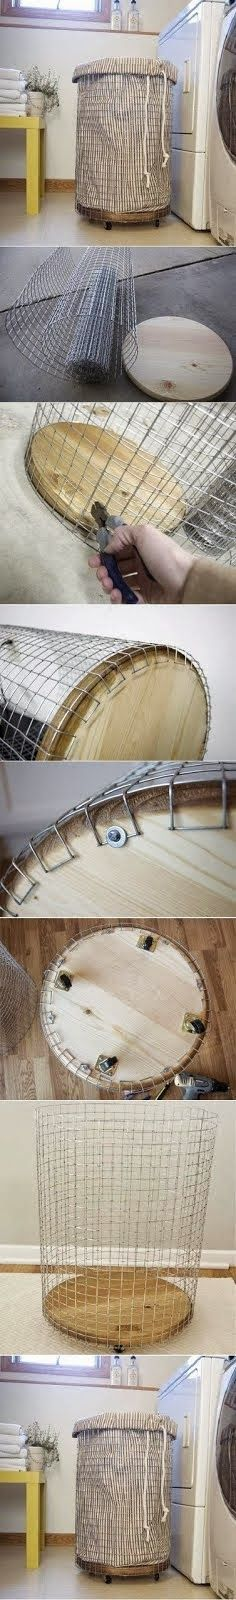 DIY : How To Make a Laundry Basket- A starting point for a new basket. Since my cats ADORE wicker. To shred.